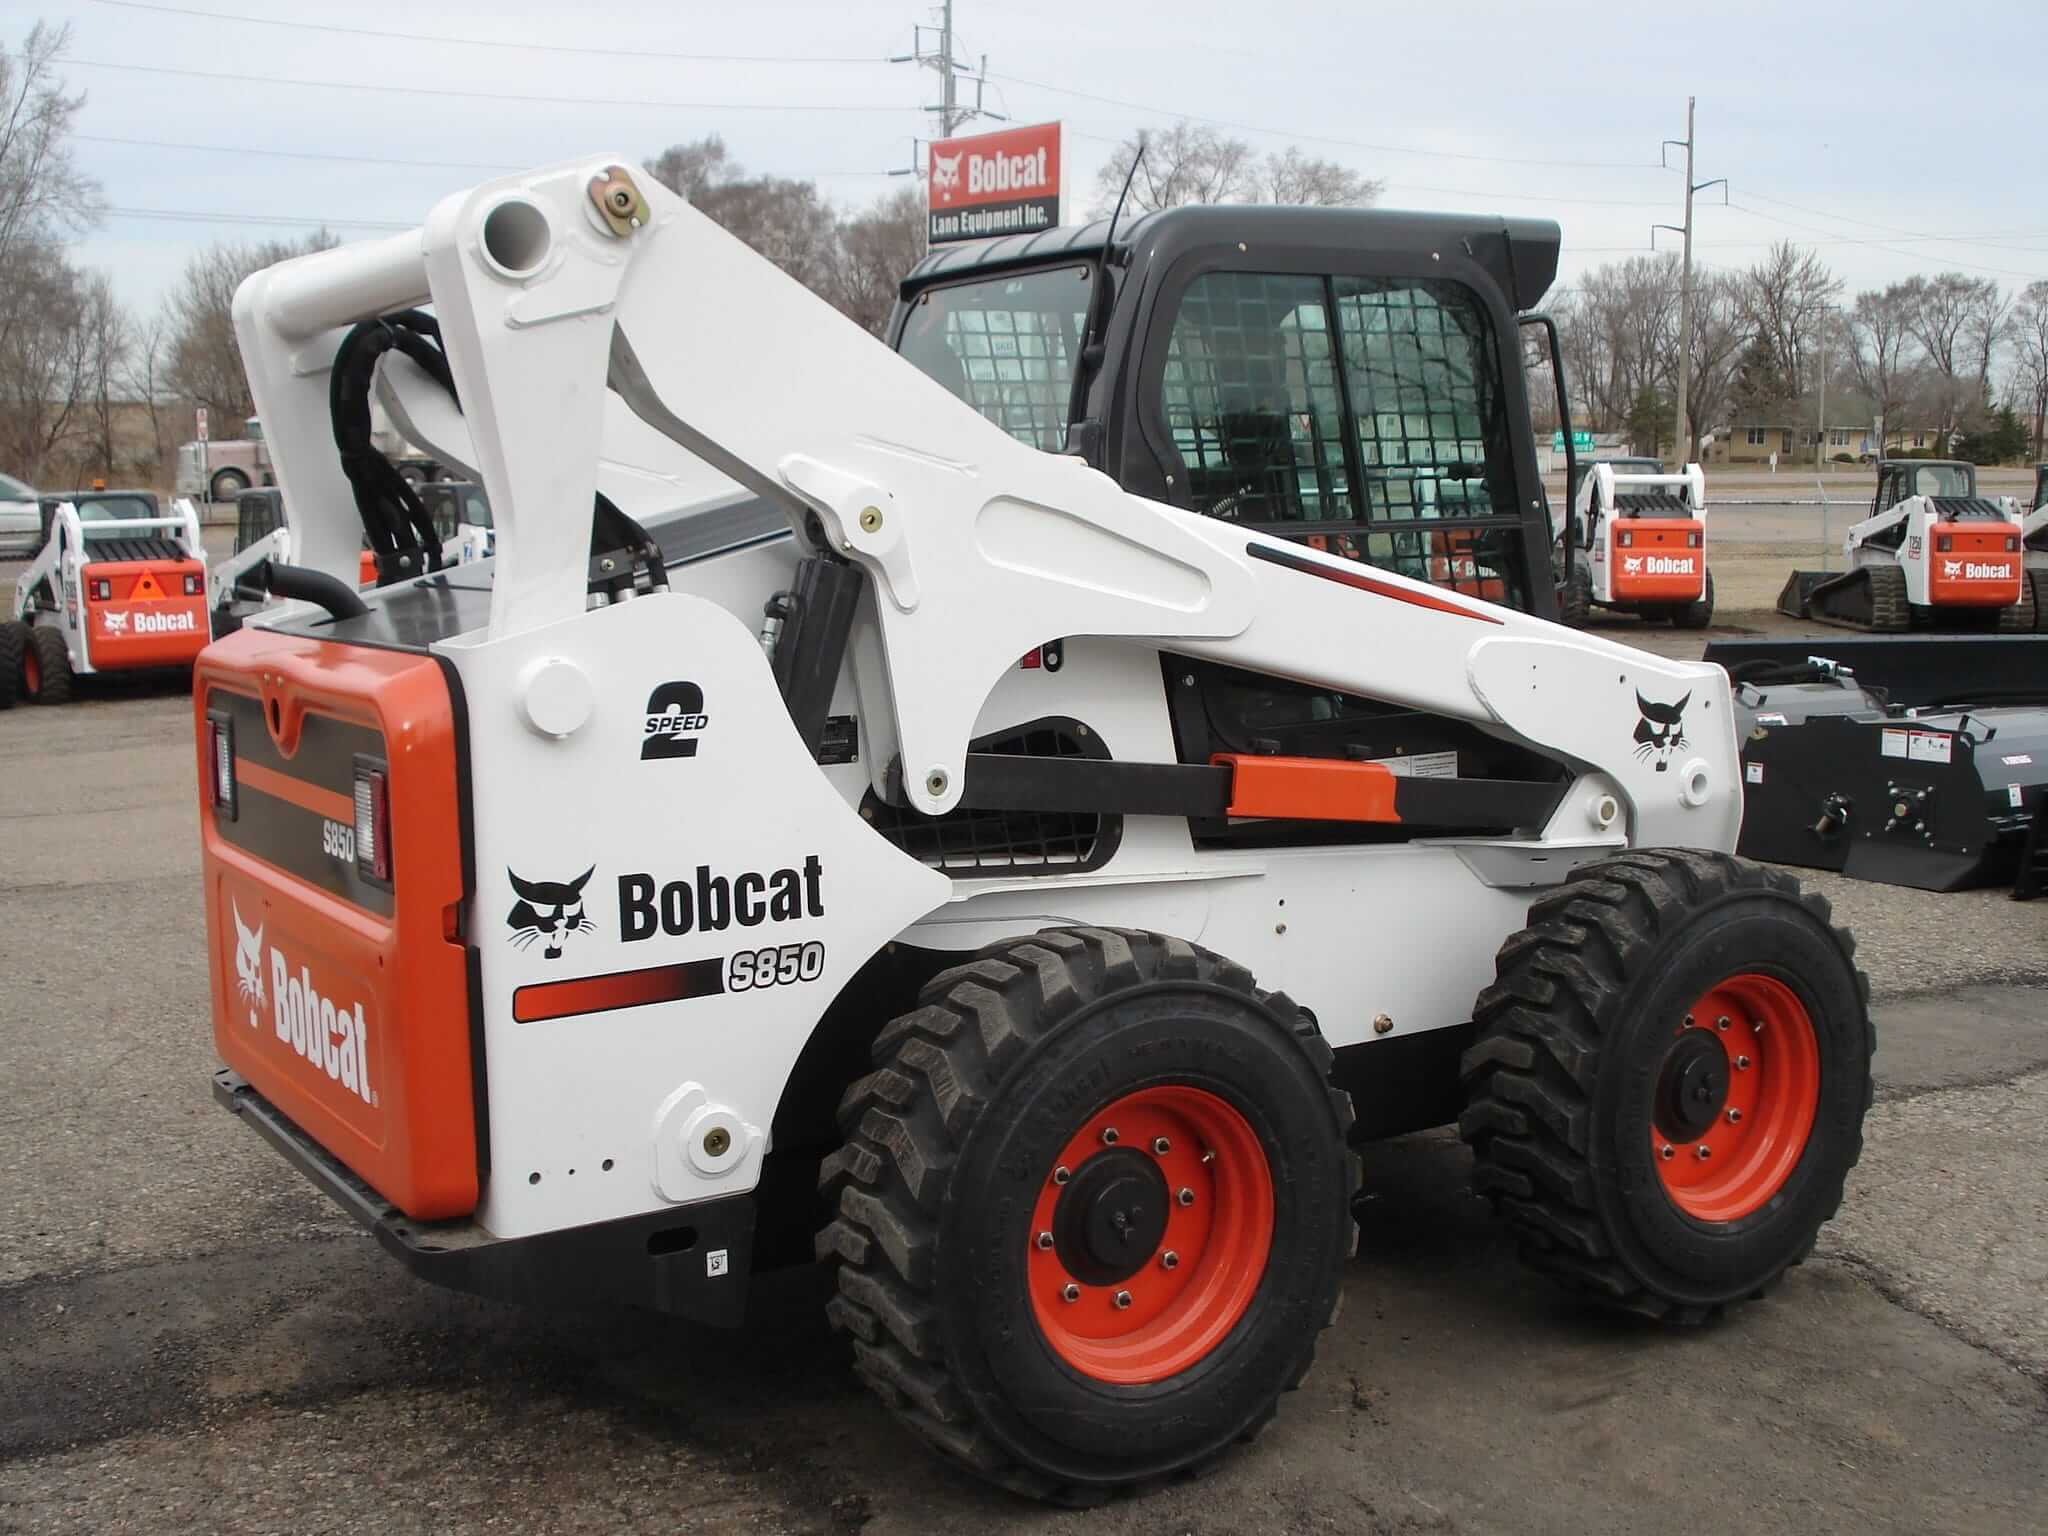 Skid Steer For Sale | Bobcat S850 | Call 763-307-2800